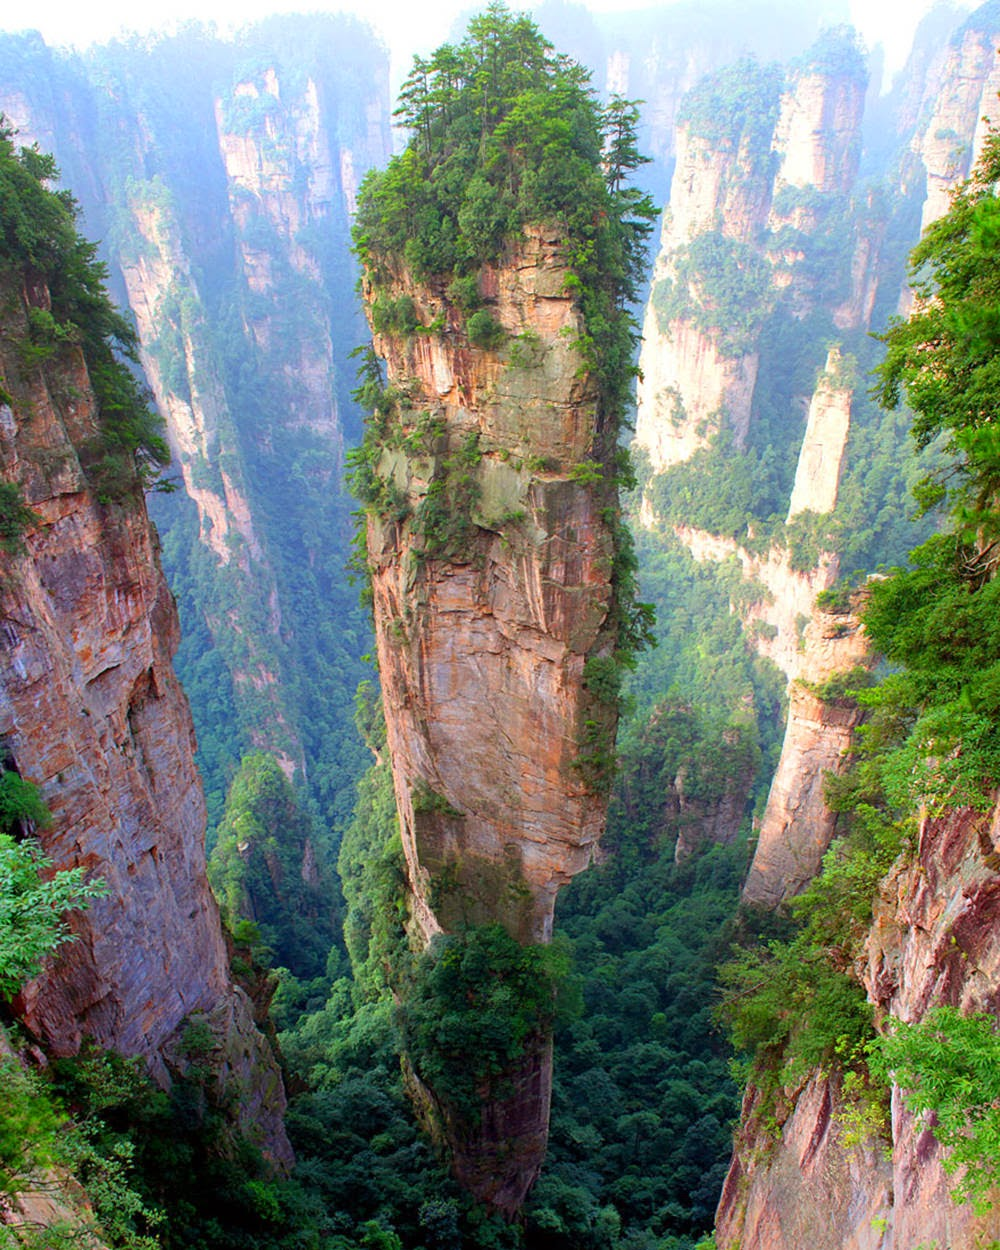 http://www.spiritscienceandmetaphysics.com/33-unbelievable-places-to-visit-before-you-die-earth-is-so-amazing/